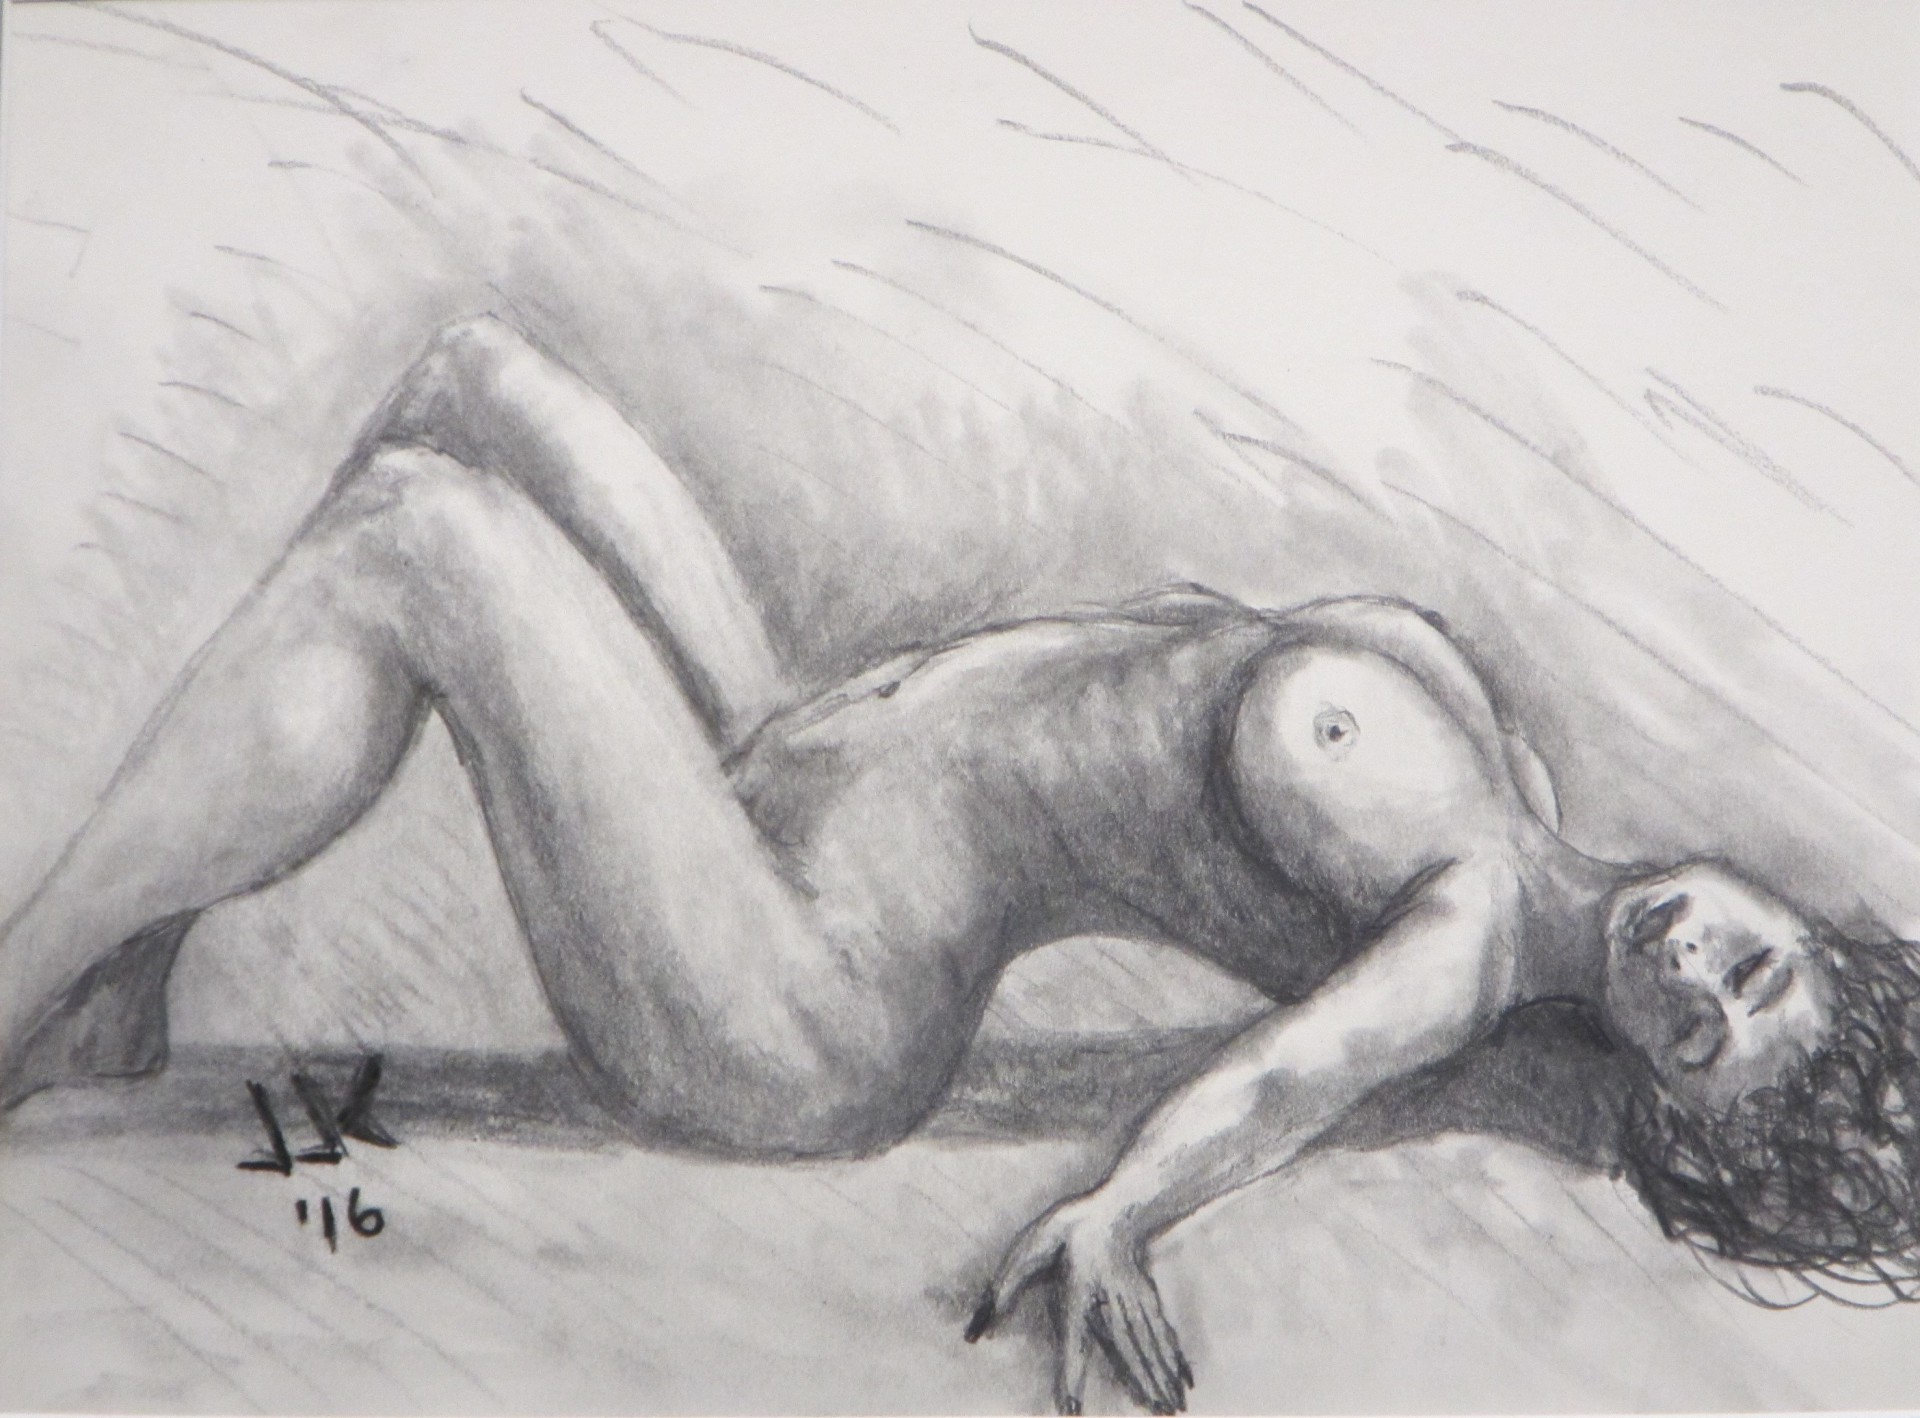 Pencil drawing of a nude woman lying on the floor and arching her back.